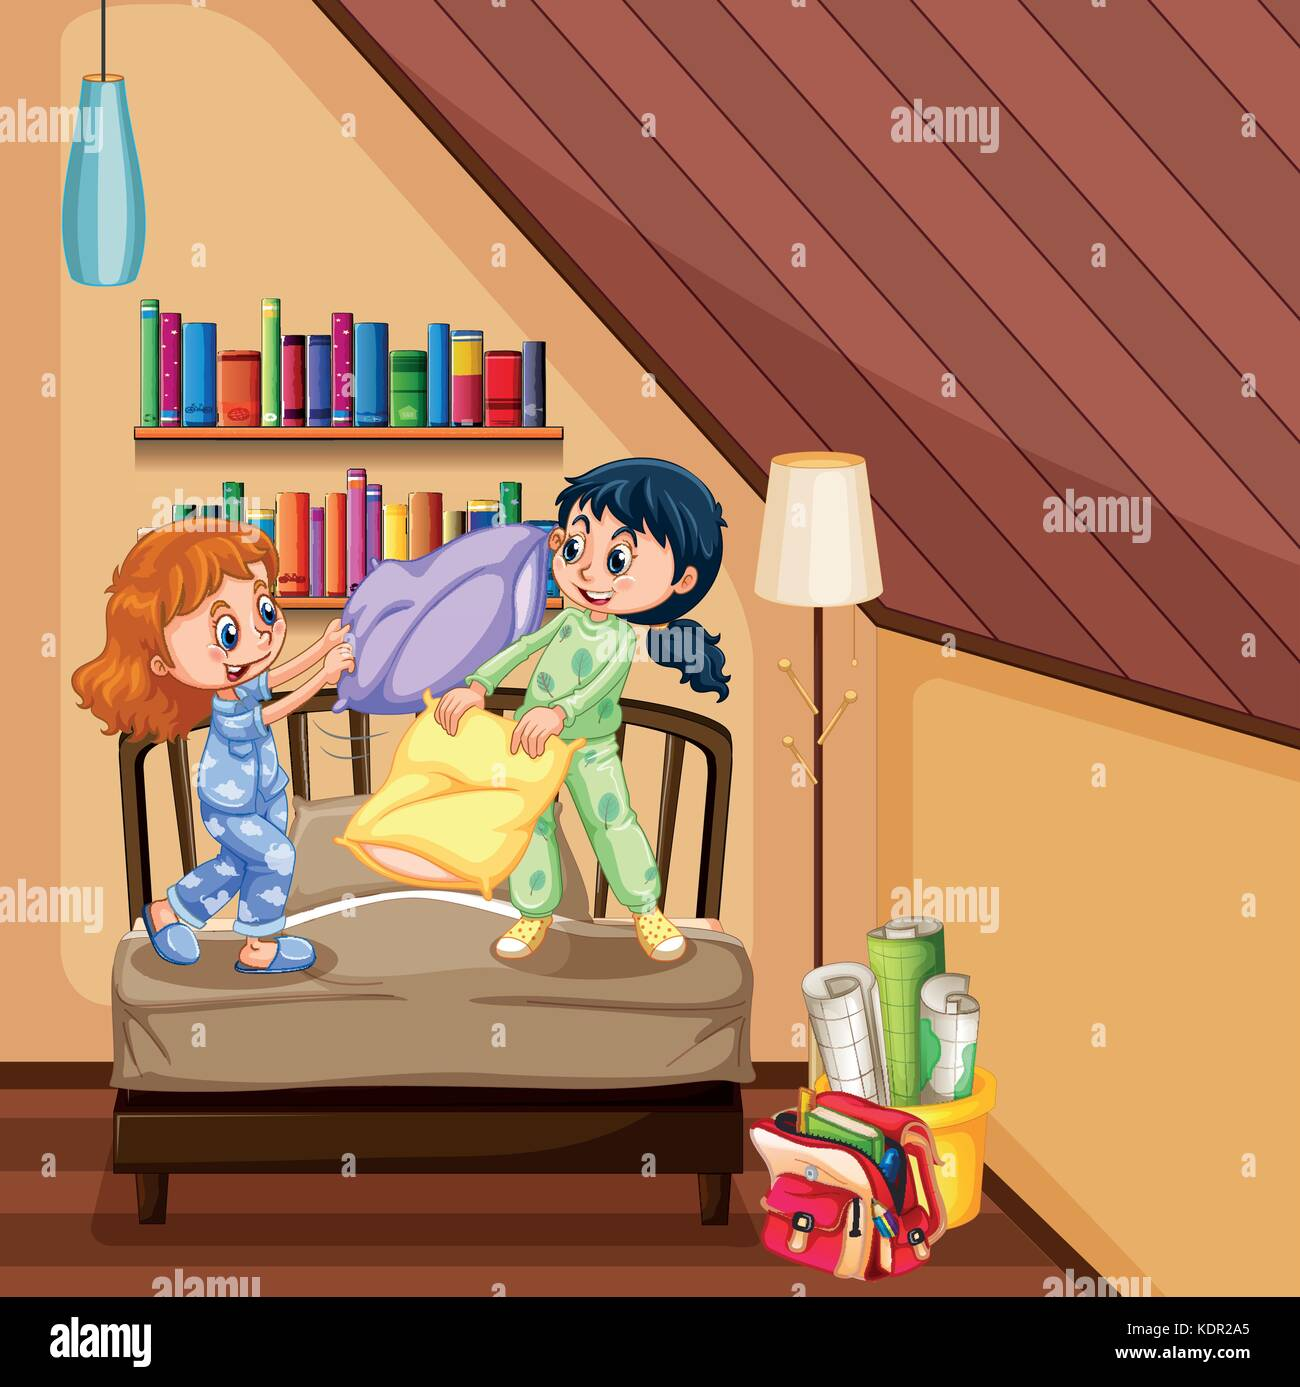 Two Girls Playing Pillow In Bedroom Illustration